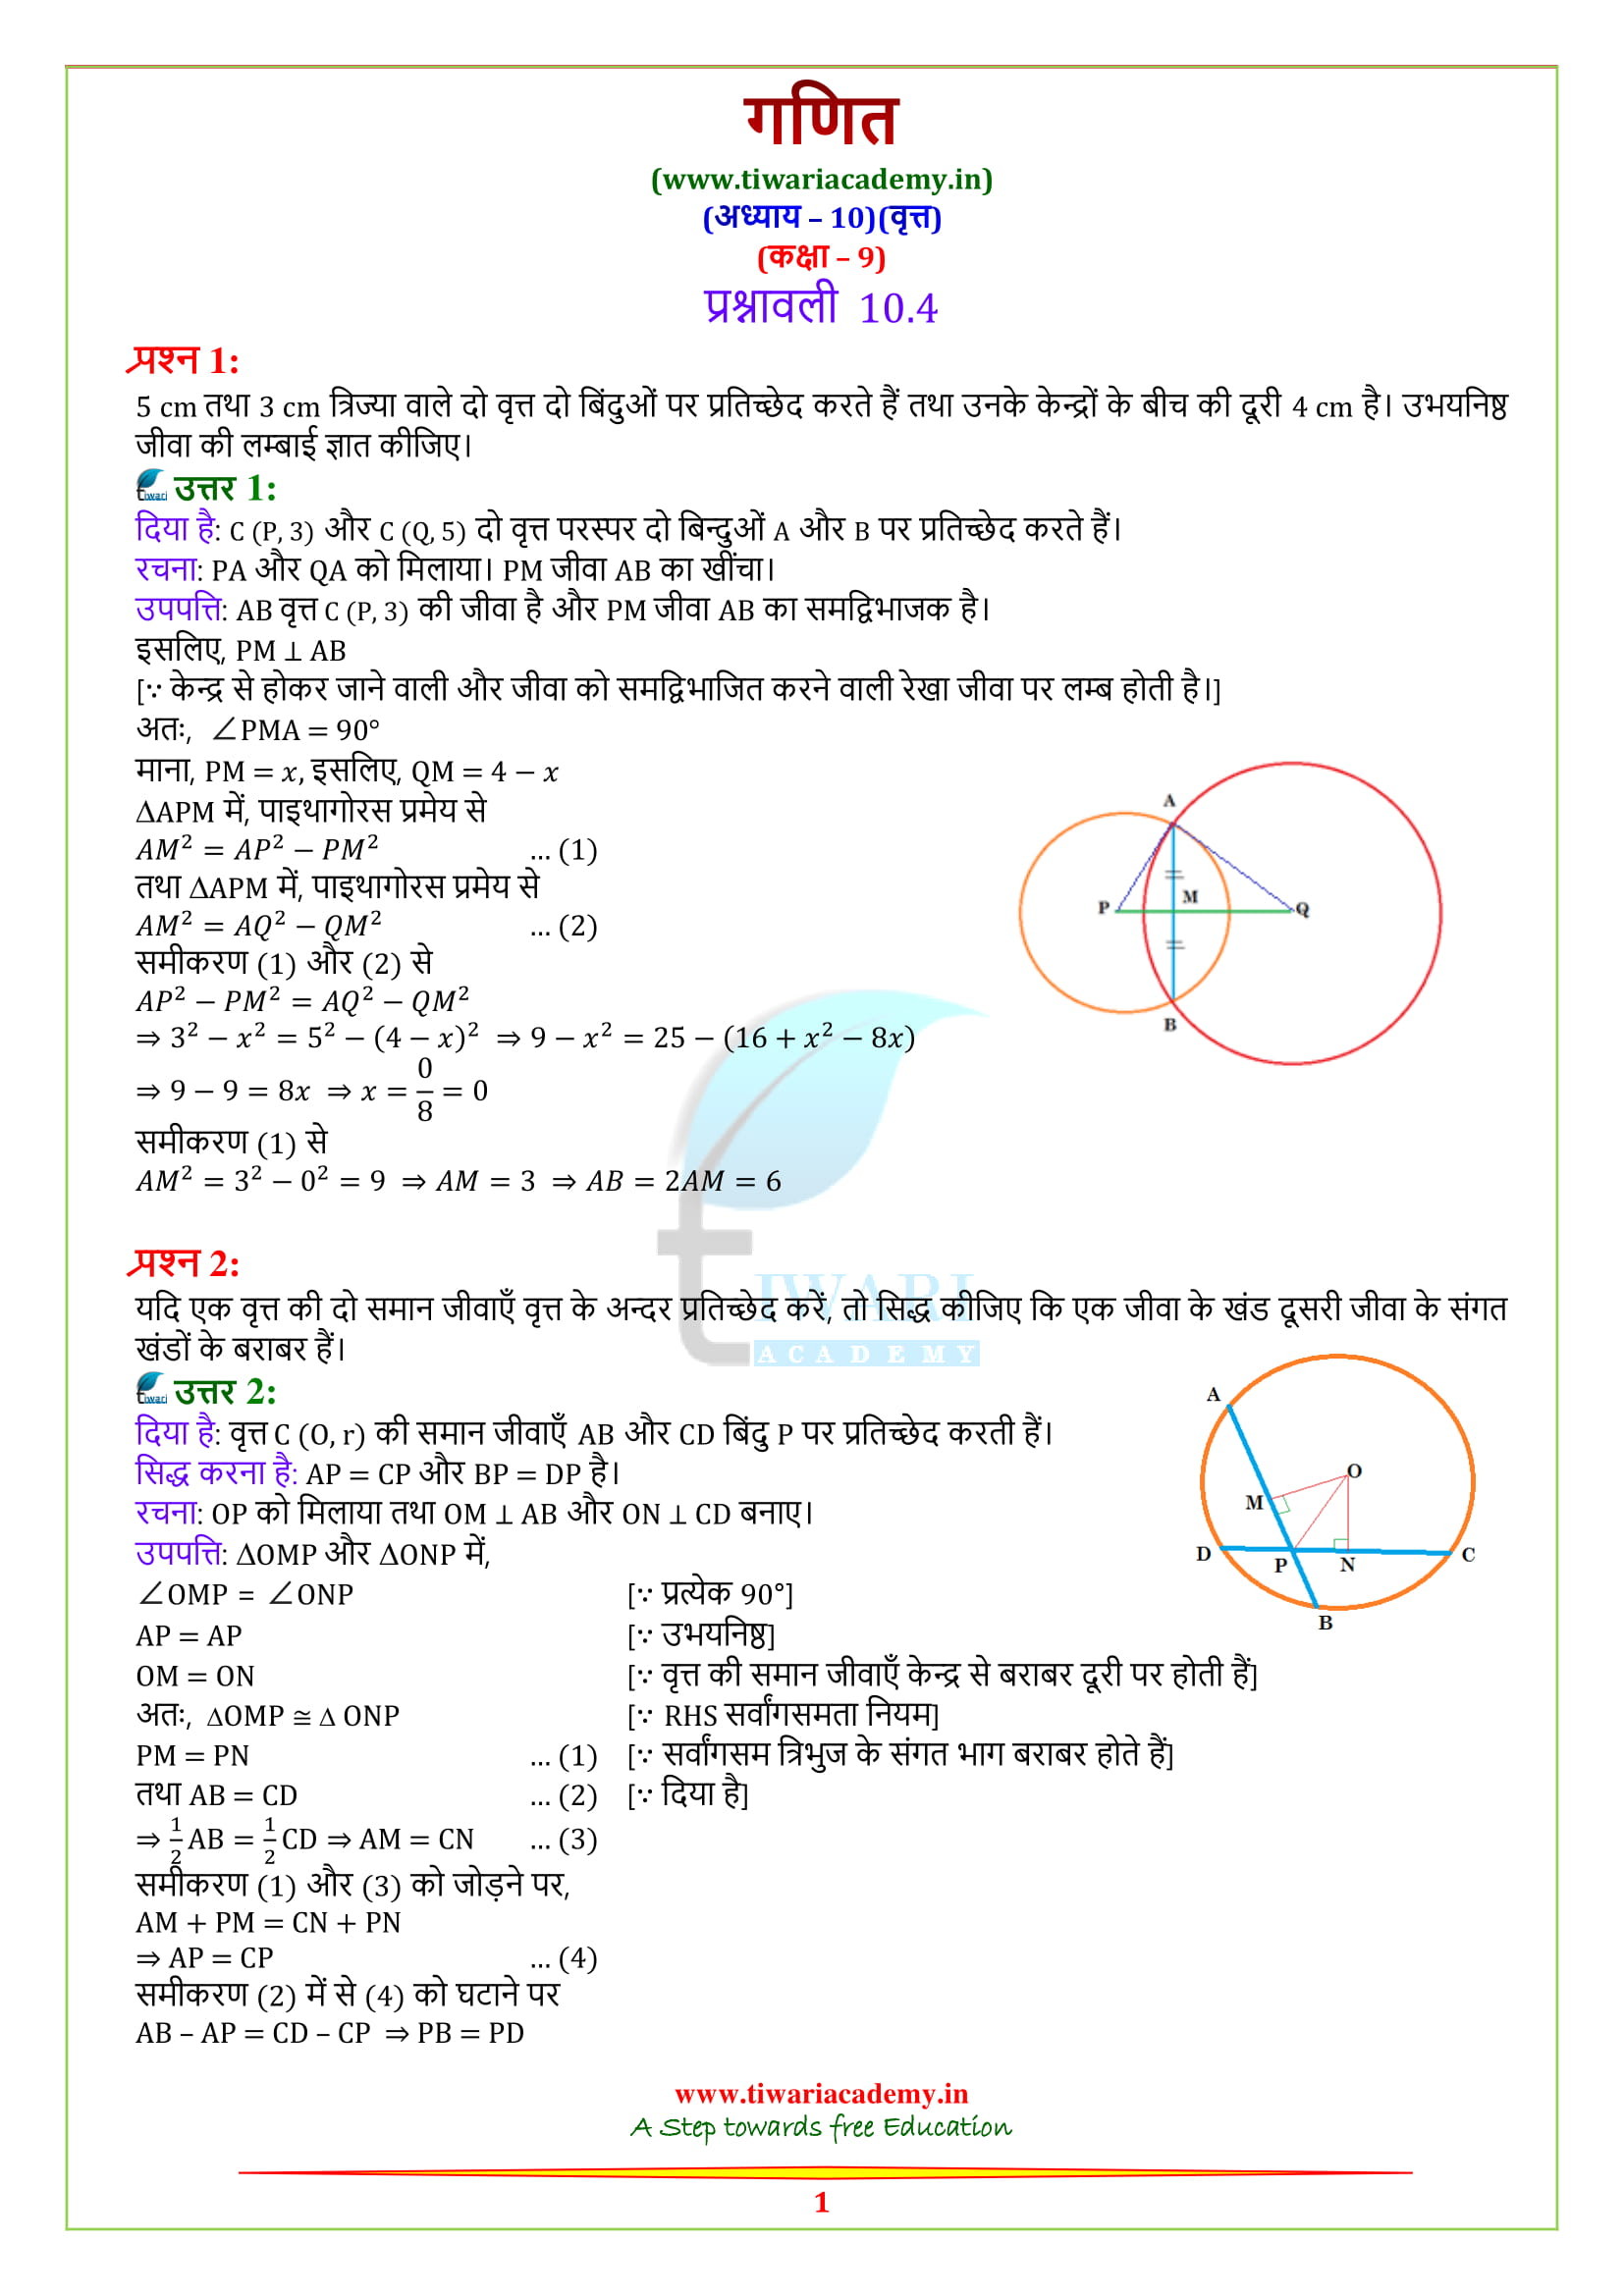 9 Maths Exercise 10.4 solutions in hindi